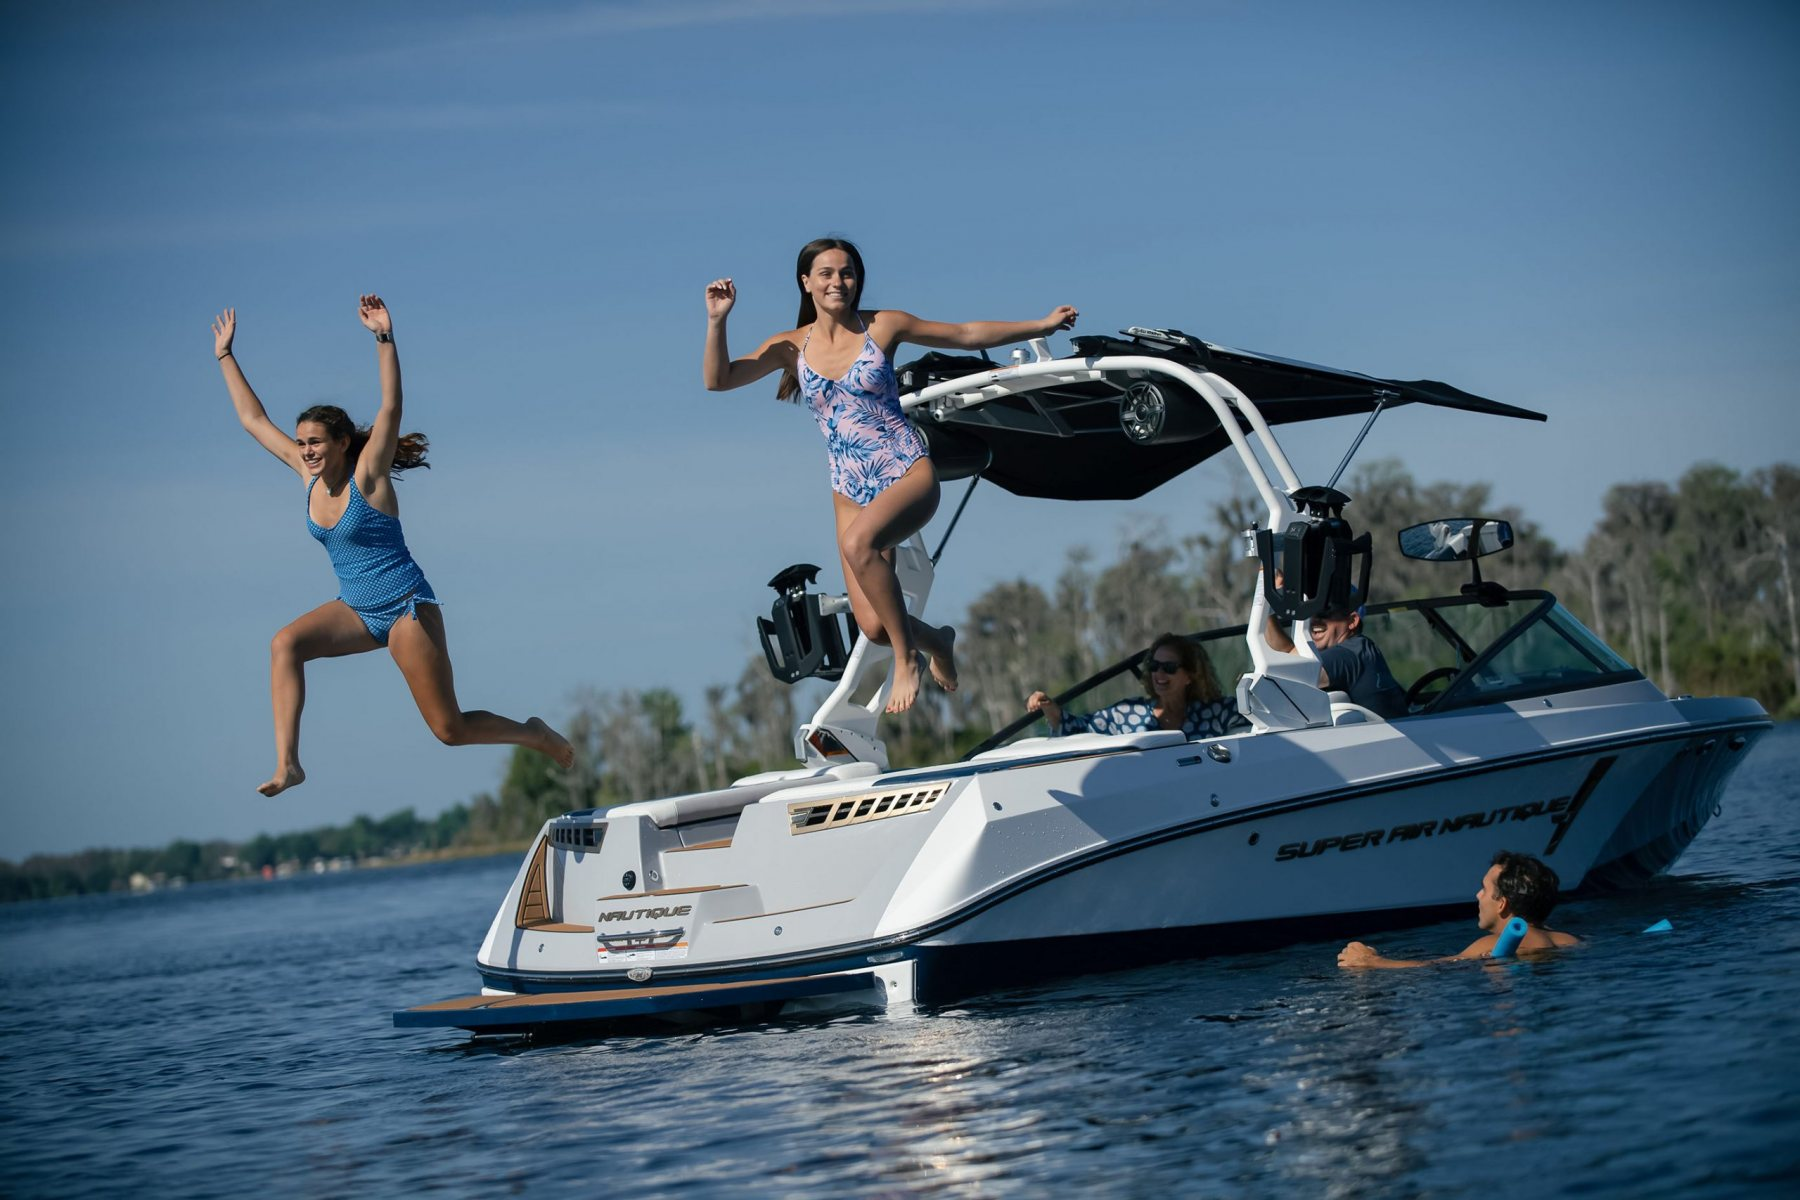 Family Time on the 2022 Nautique 210 Wake Boat